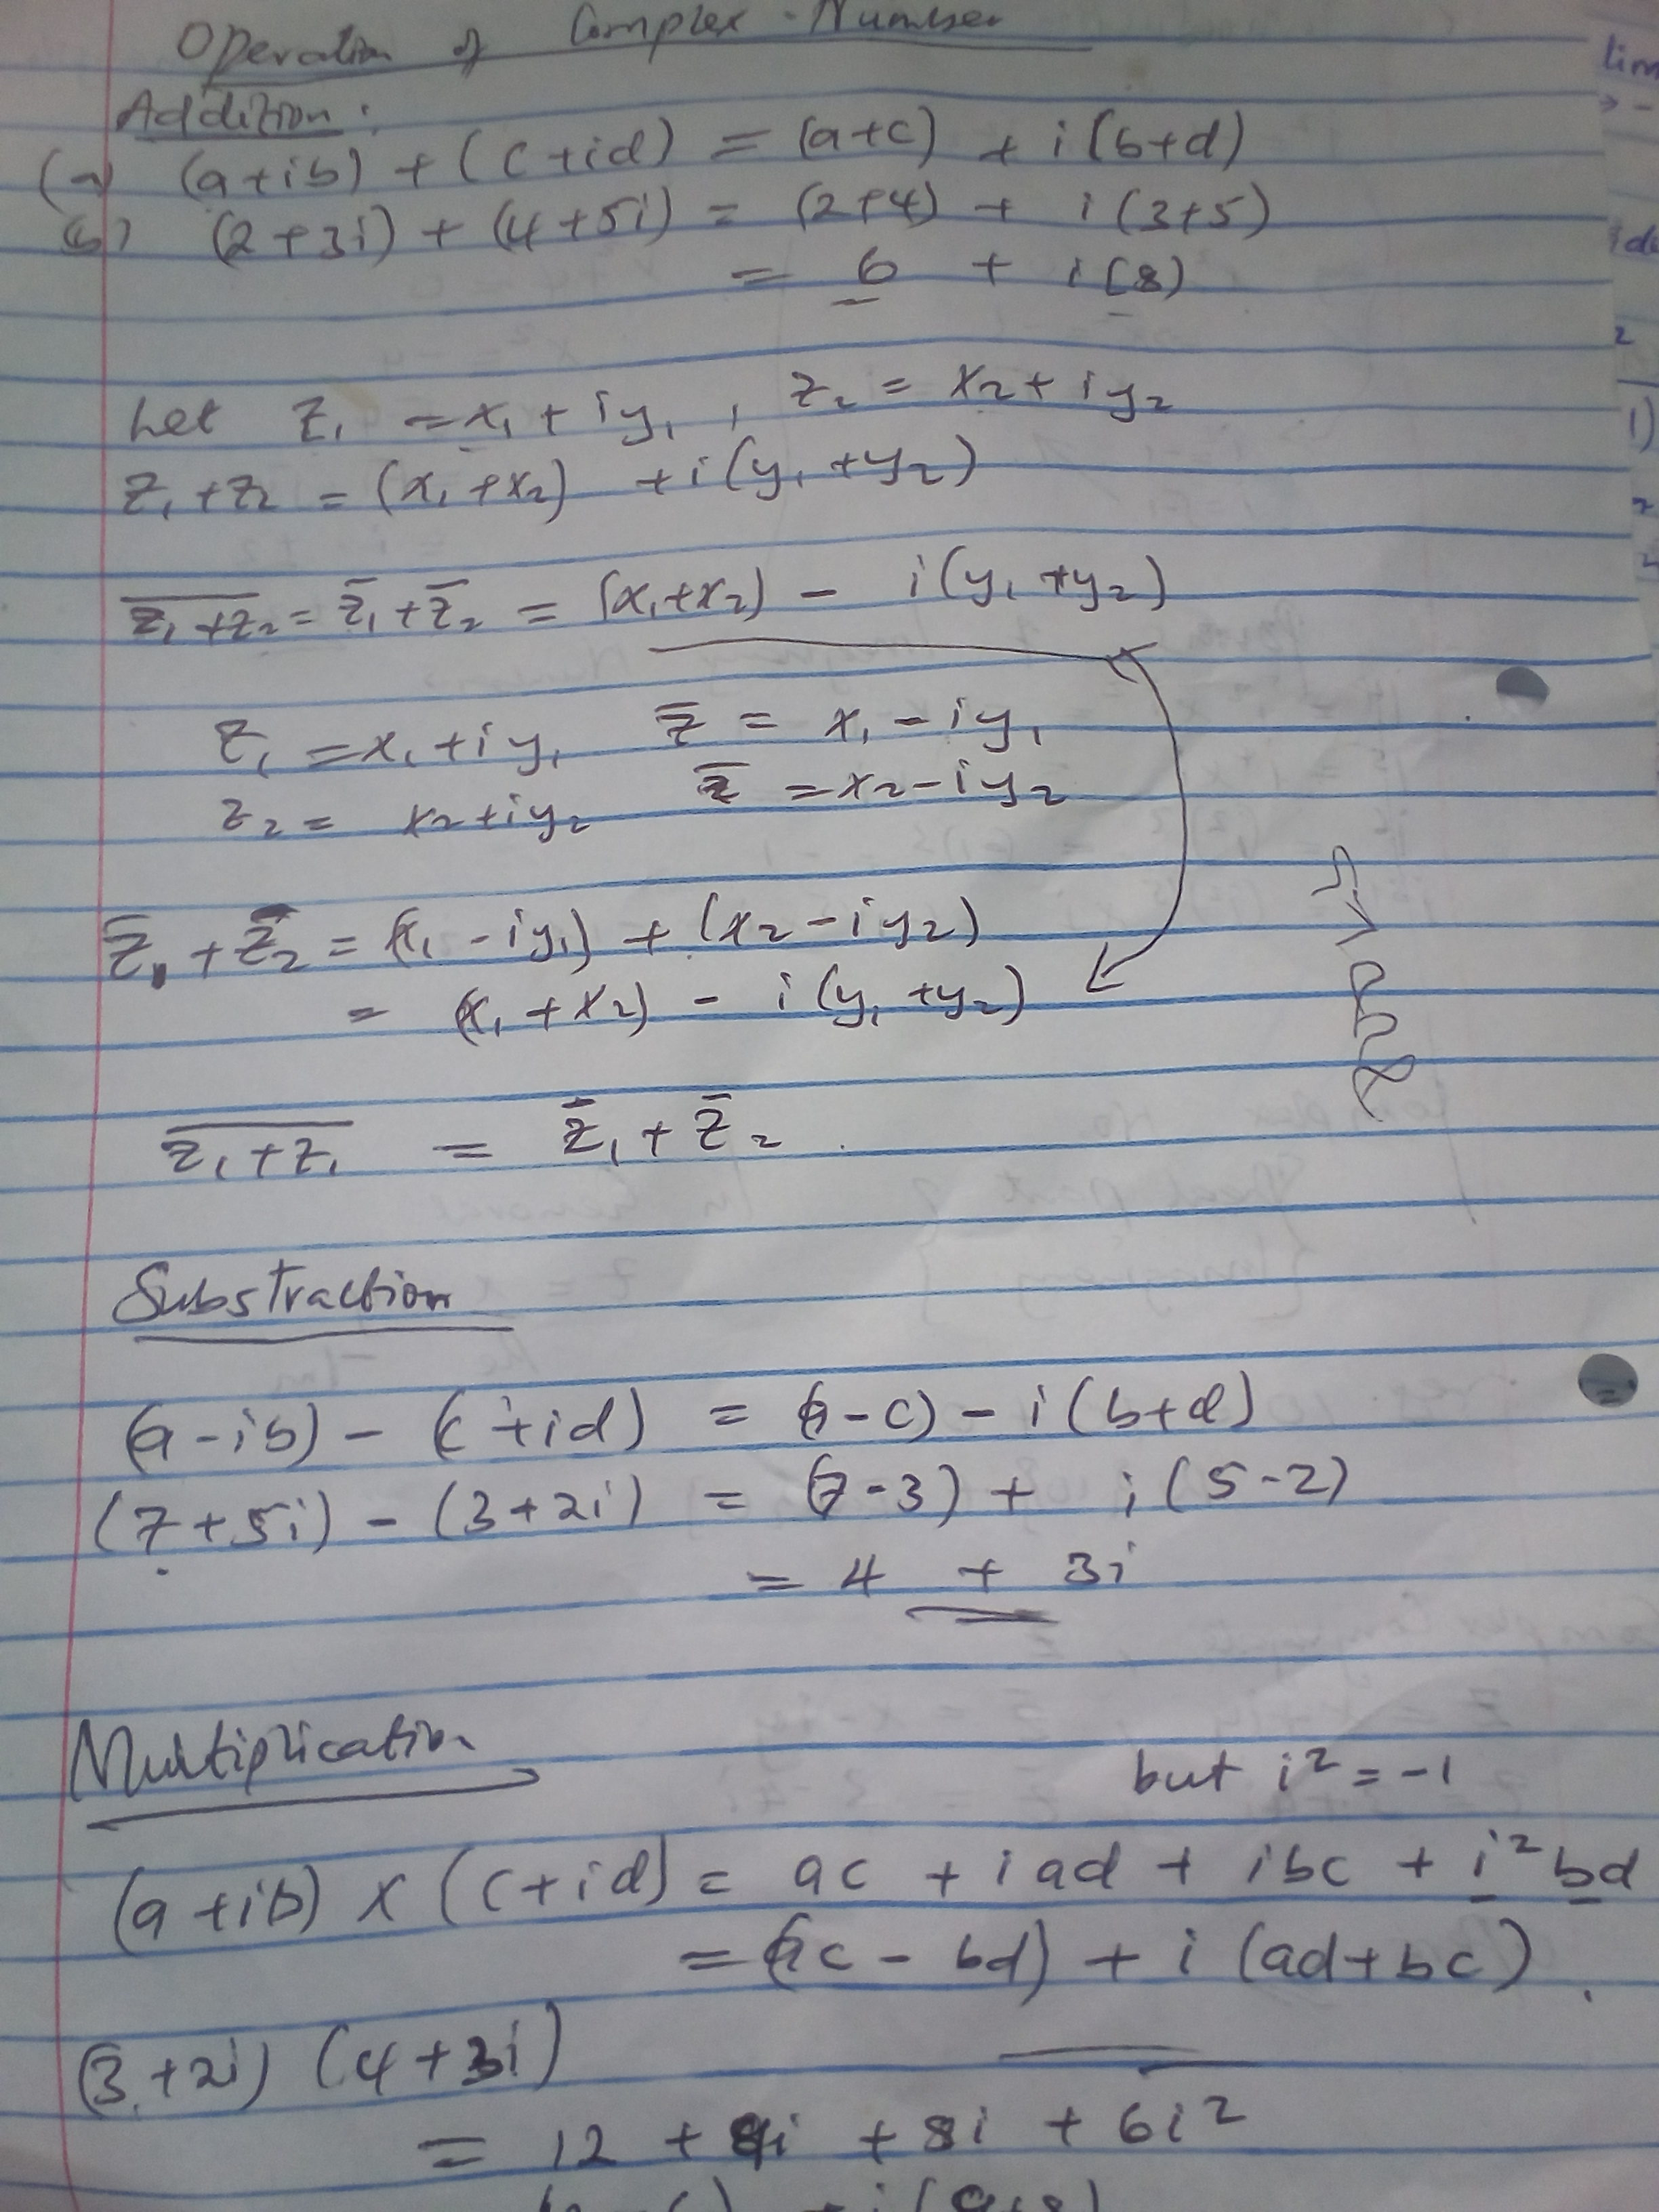 Subtraction and Division of Complex Numbers